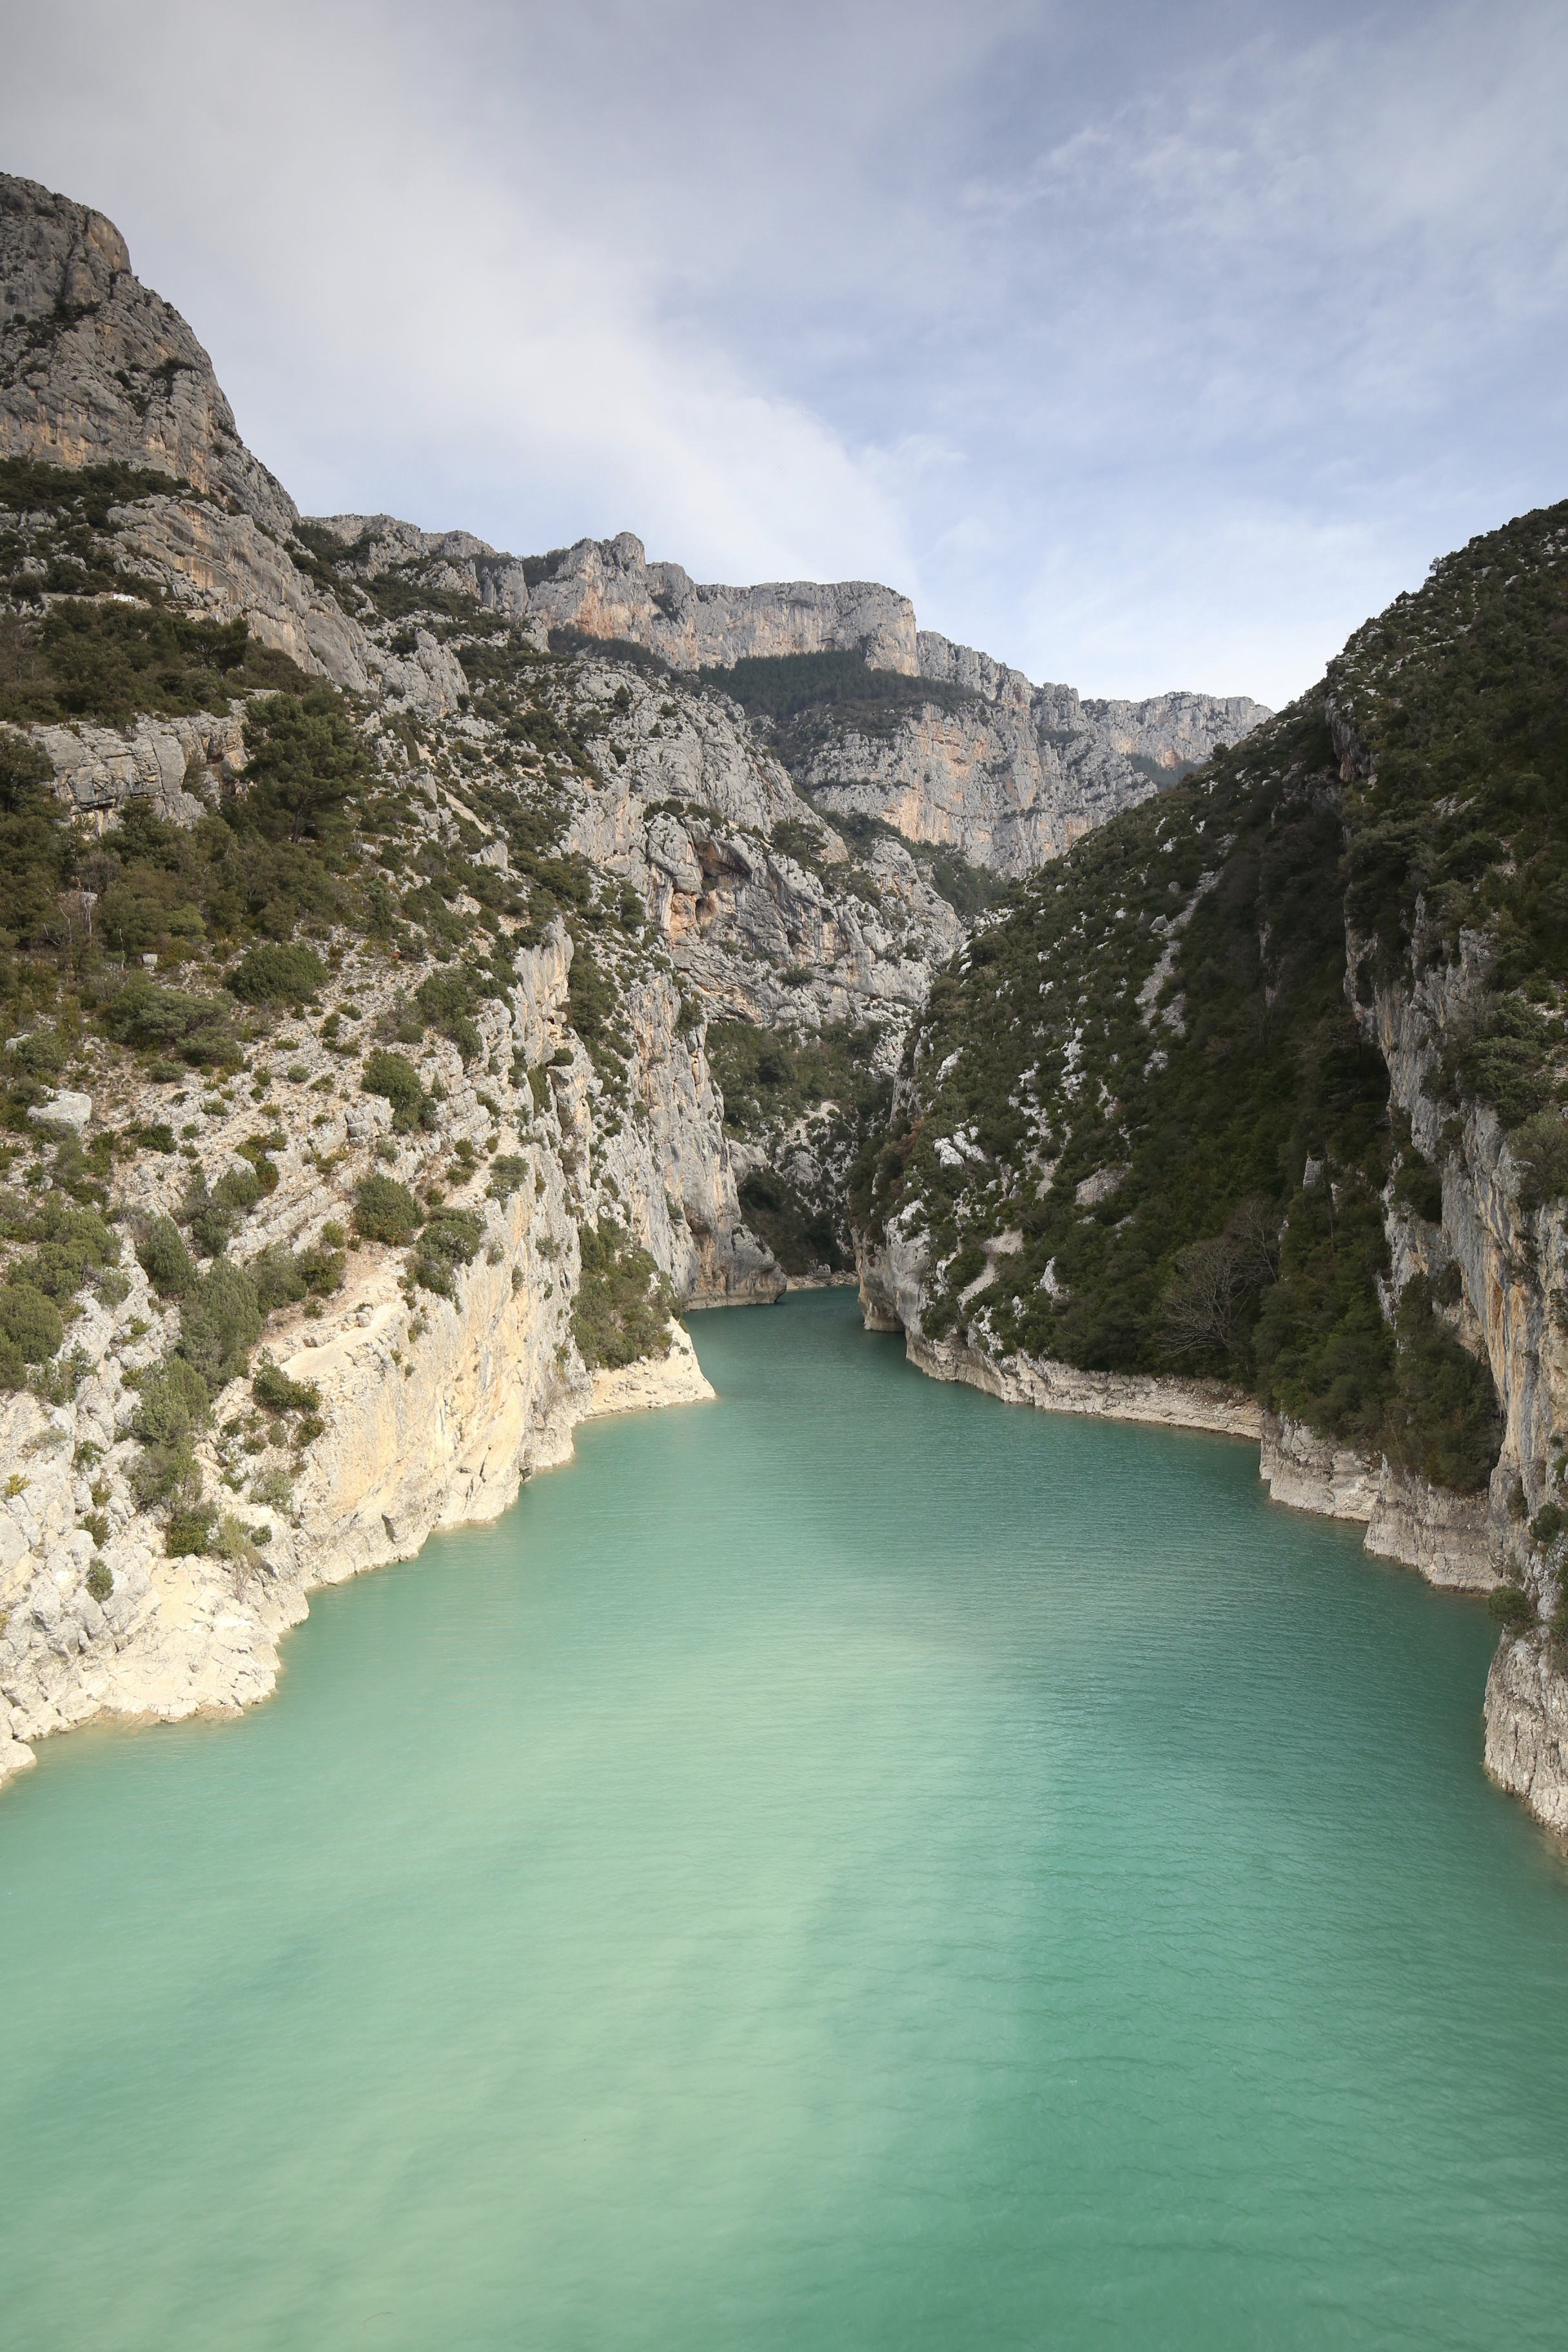 The turquoise river runs through the white rock of the Verdon Gorge, on a sunny day.